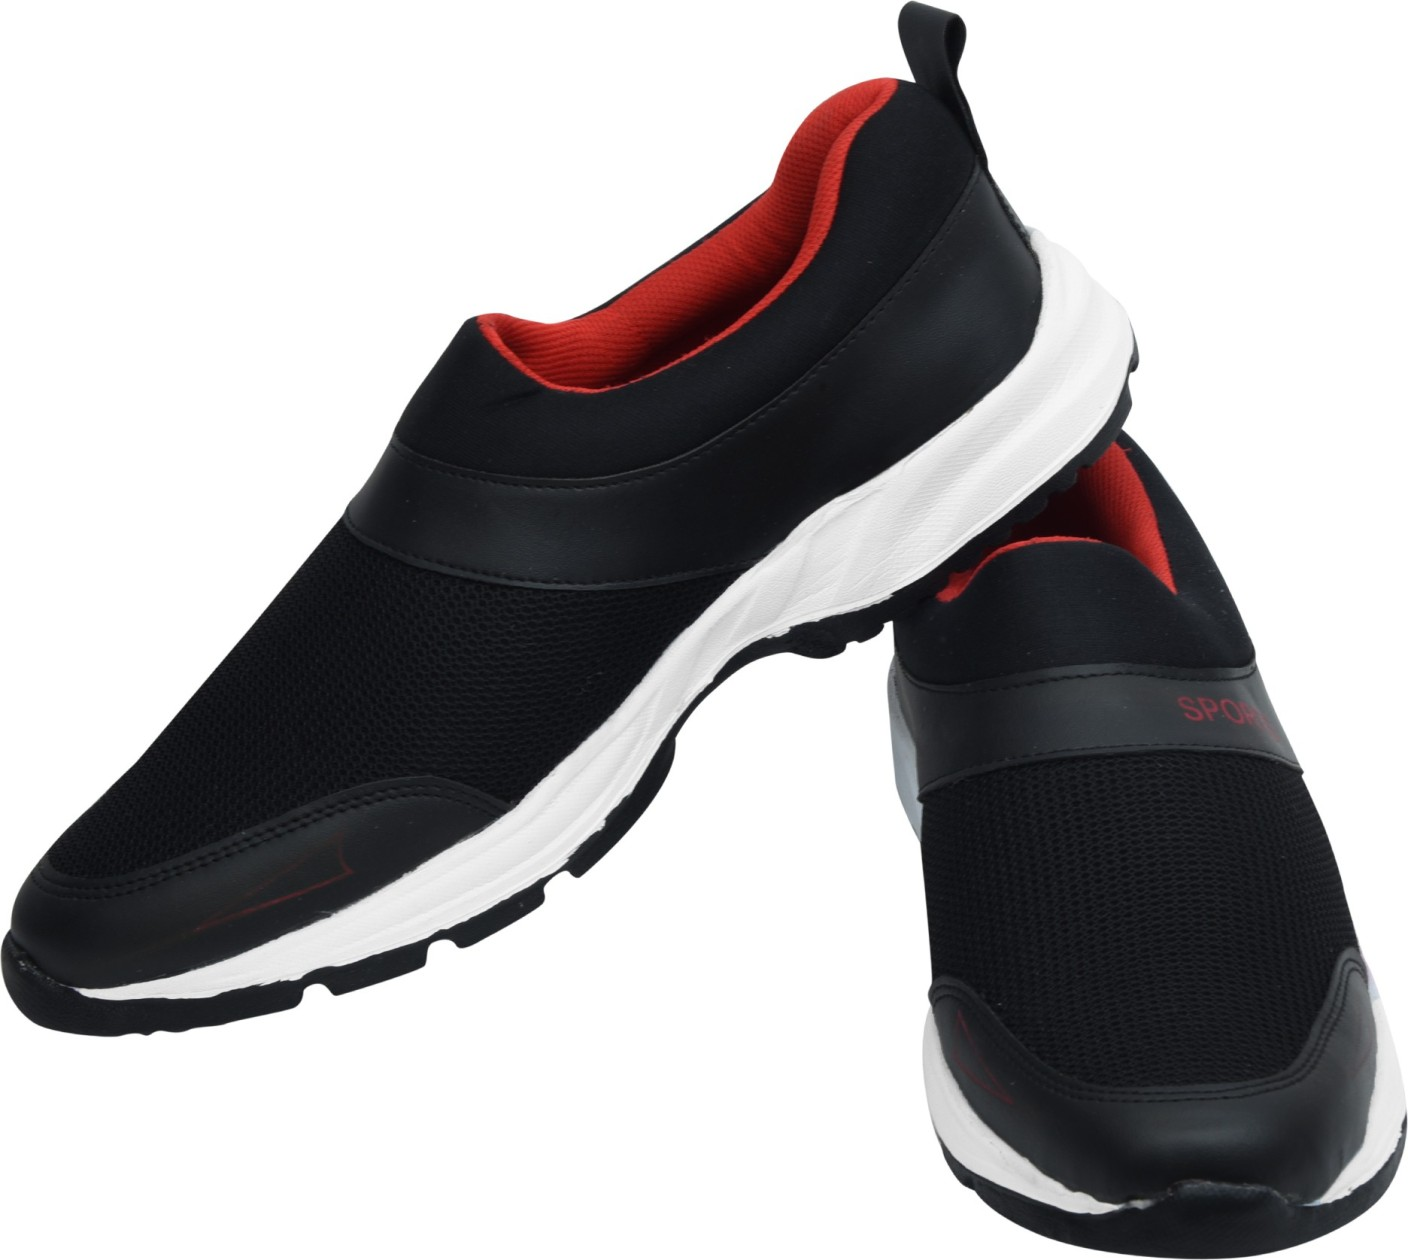 Buy Cycling Shoes Online India